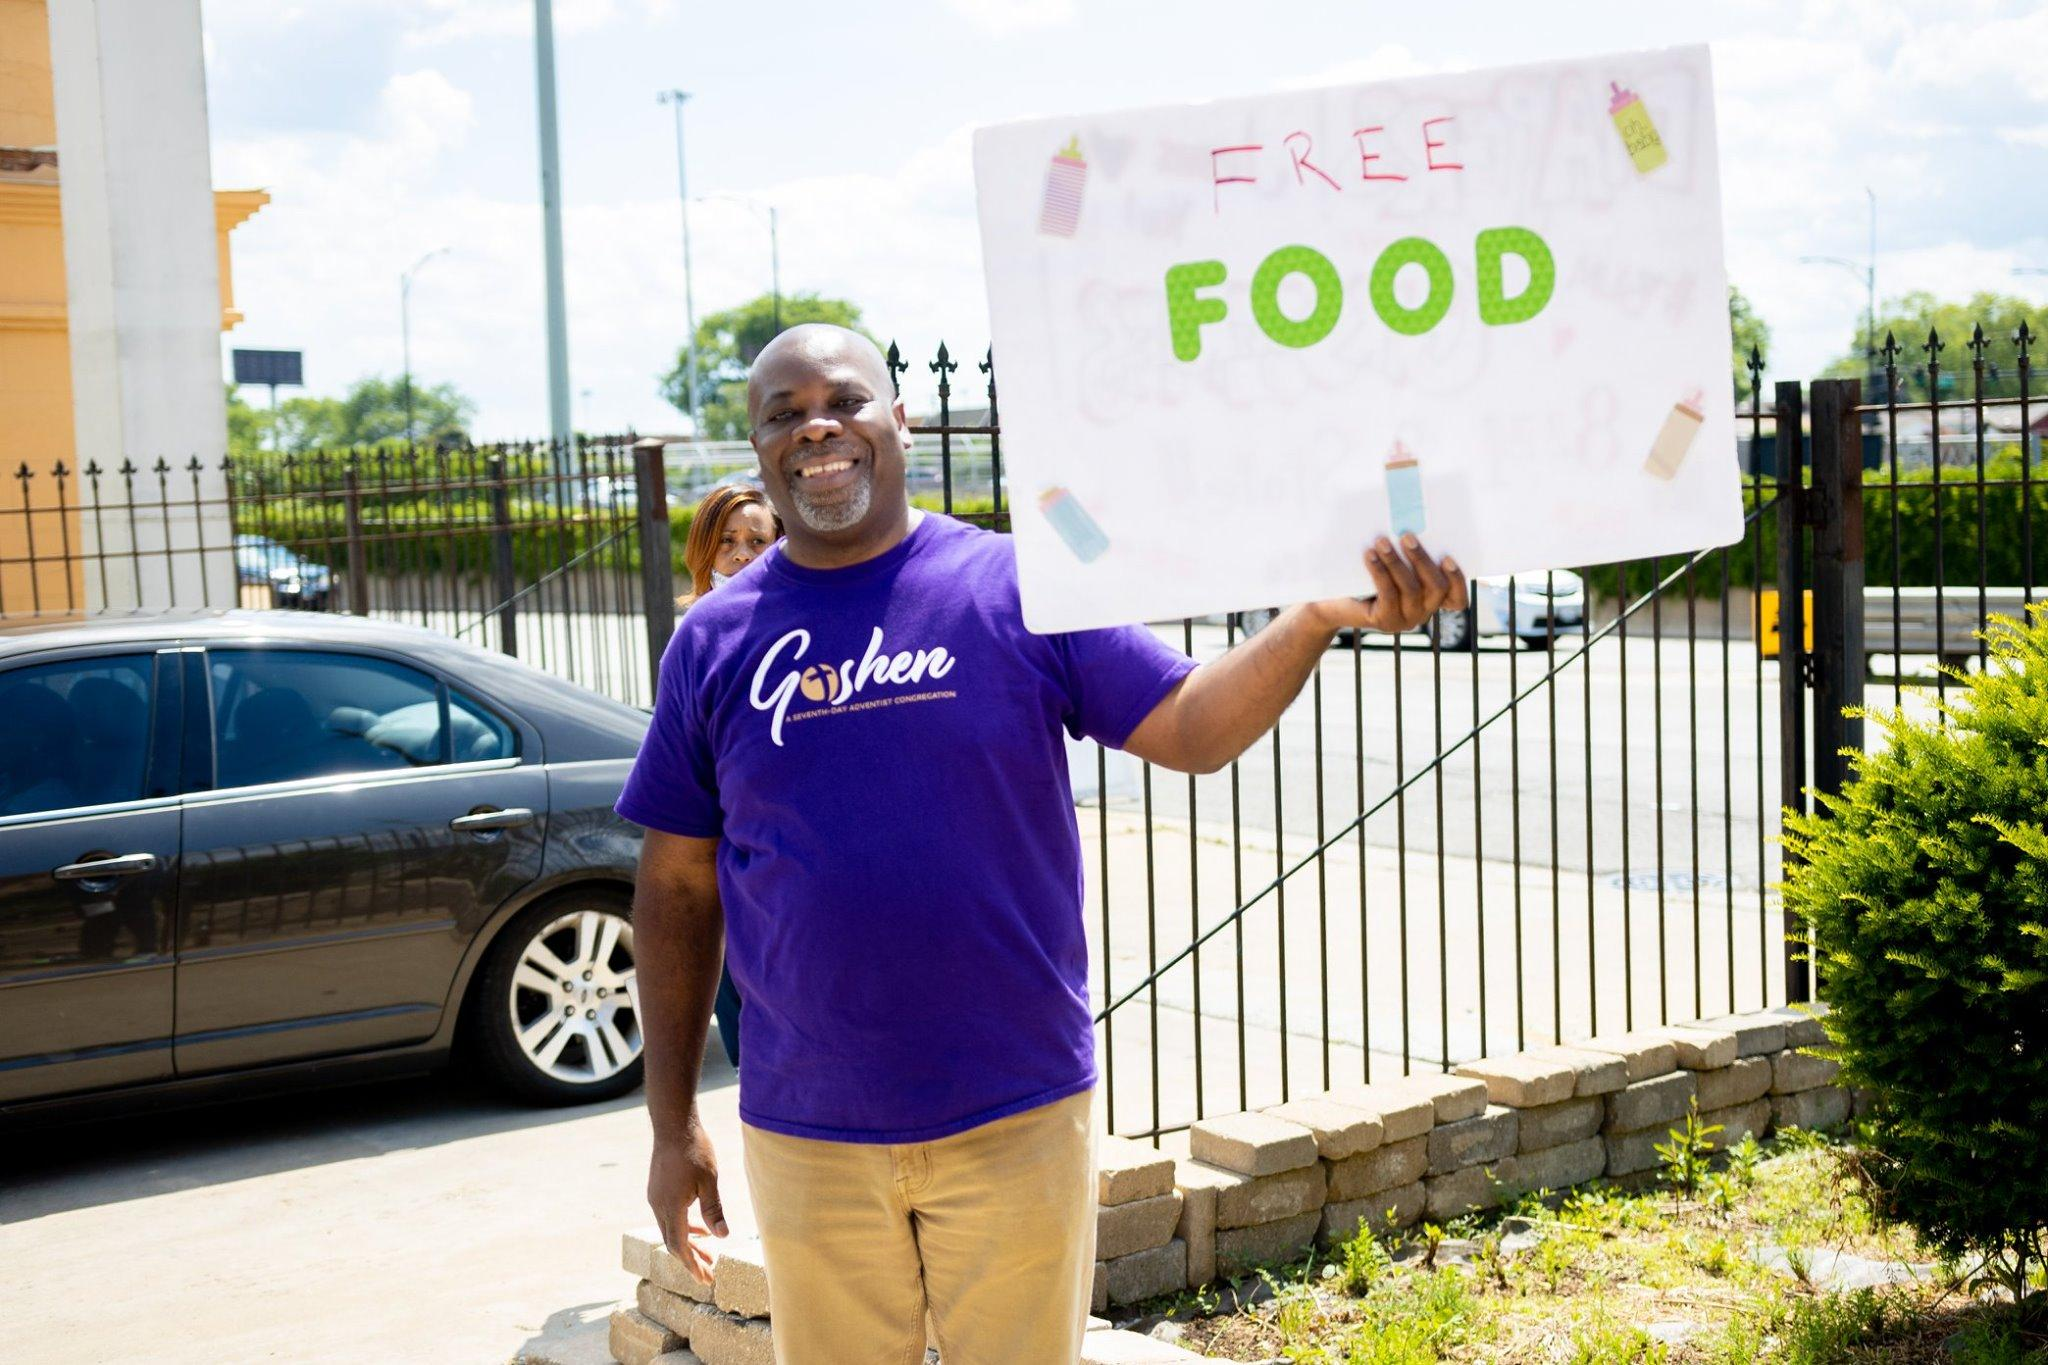 Chicago Goshen church pastor Gordon Graser promotes the food giveaway June 2020 5305.jpg